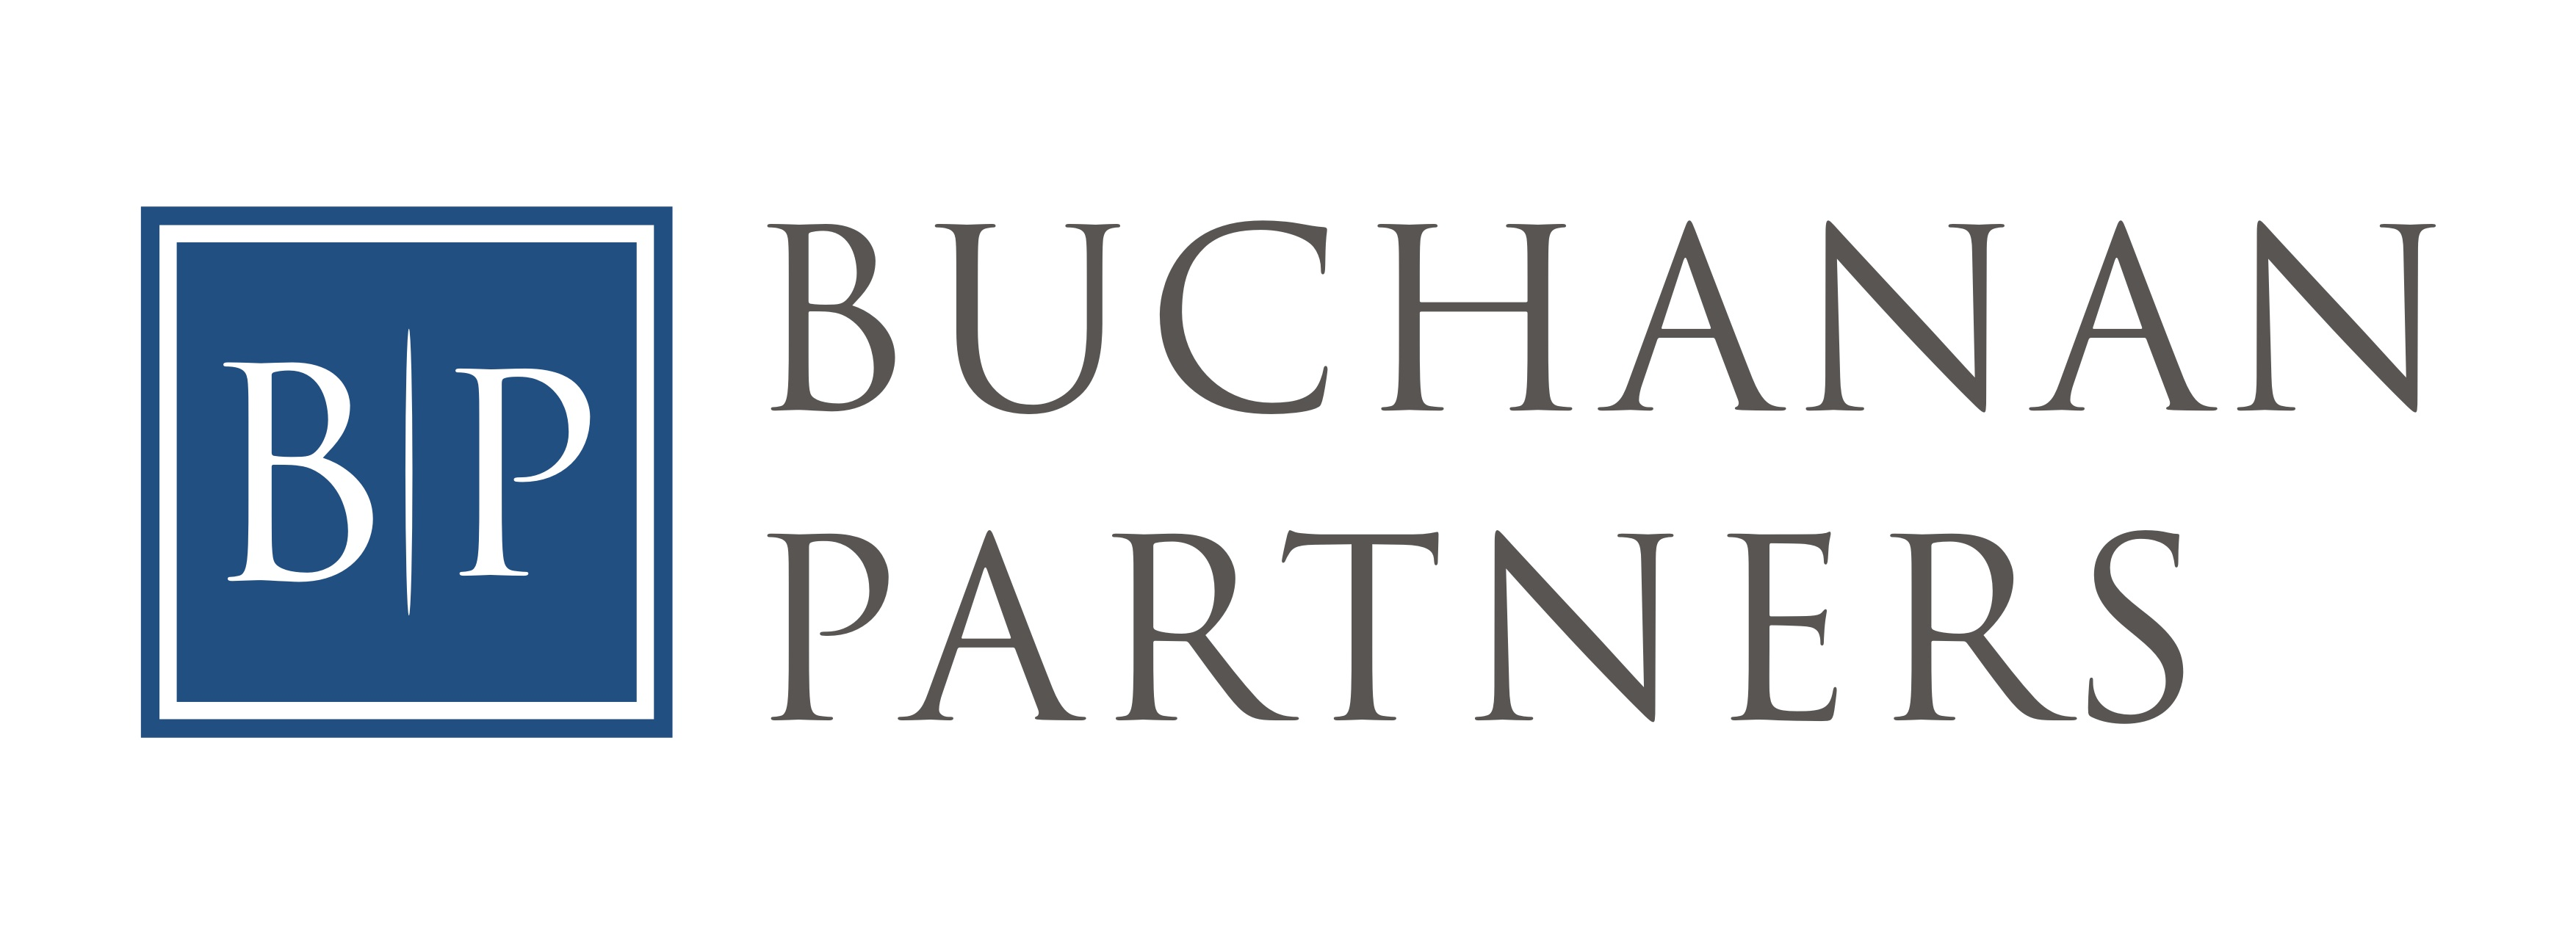 Buchanan Partners